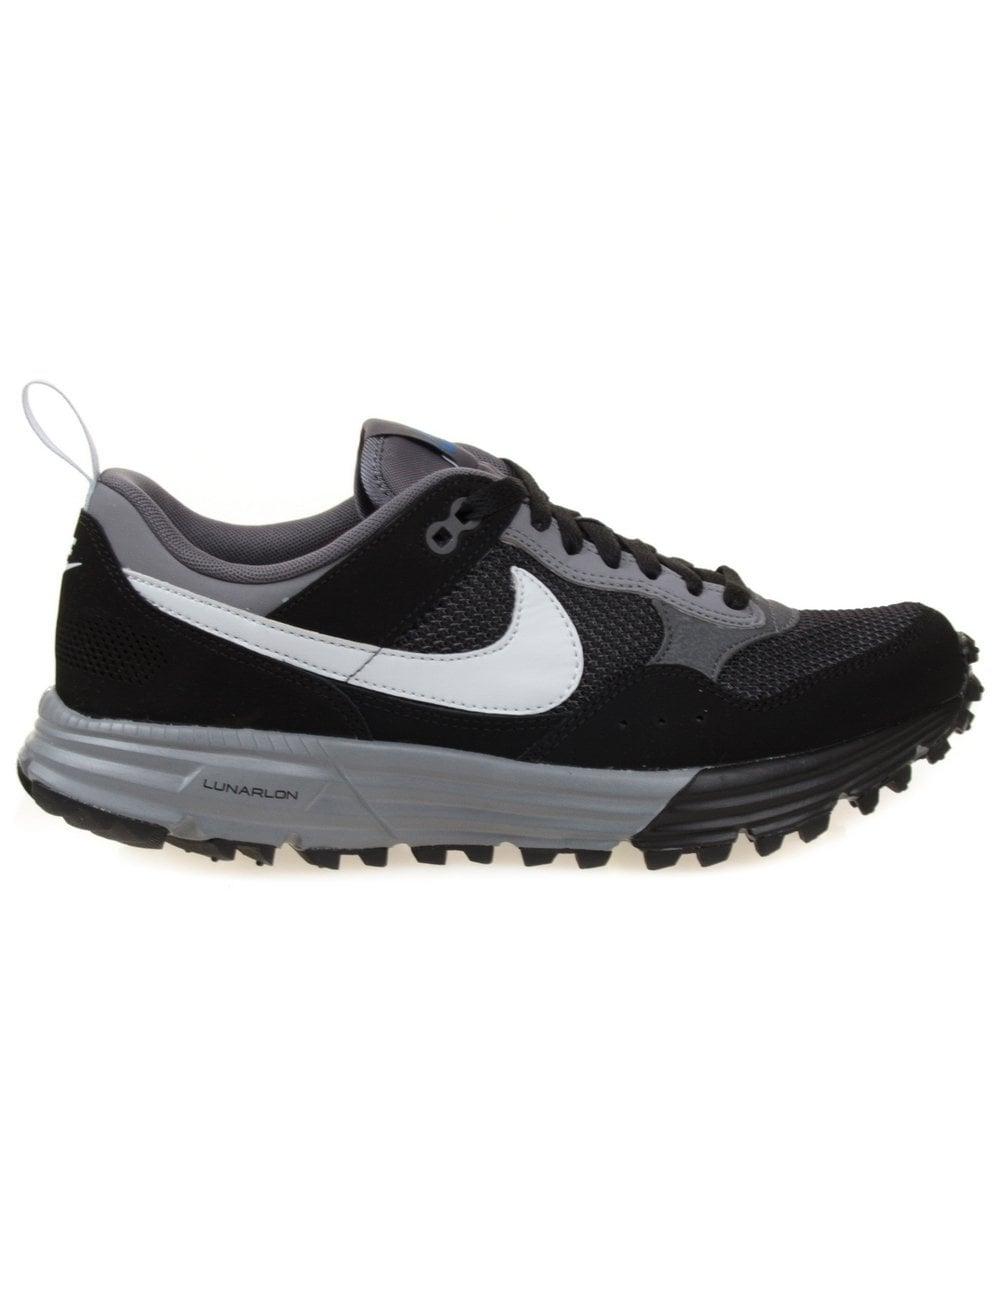 9453e0958873a Nike Lunar Pegasus NSW - Anthracite - Footwear from Fat Buddha Store UK